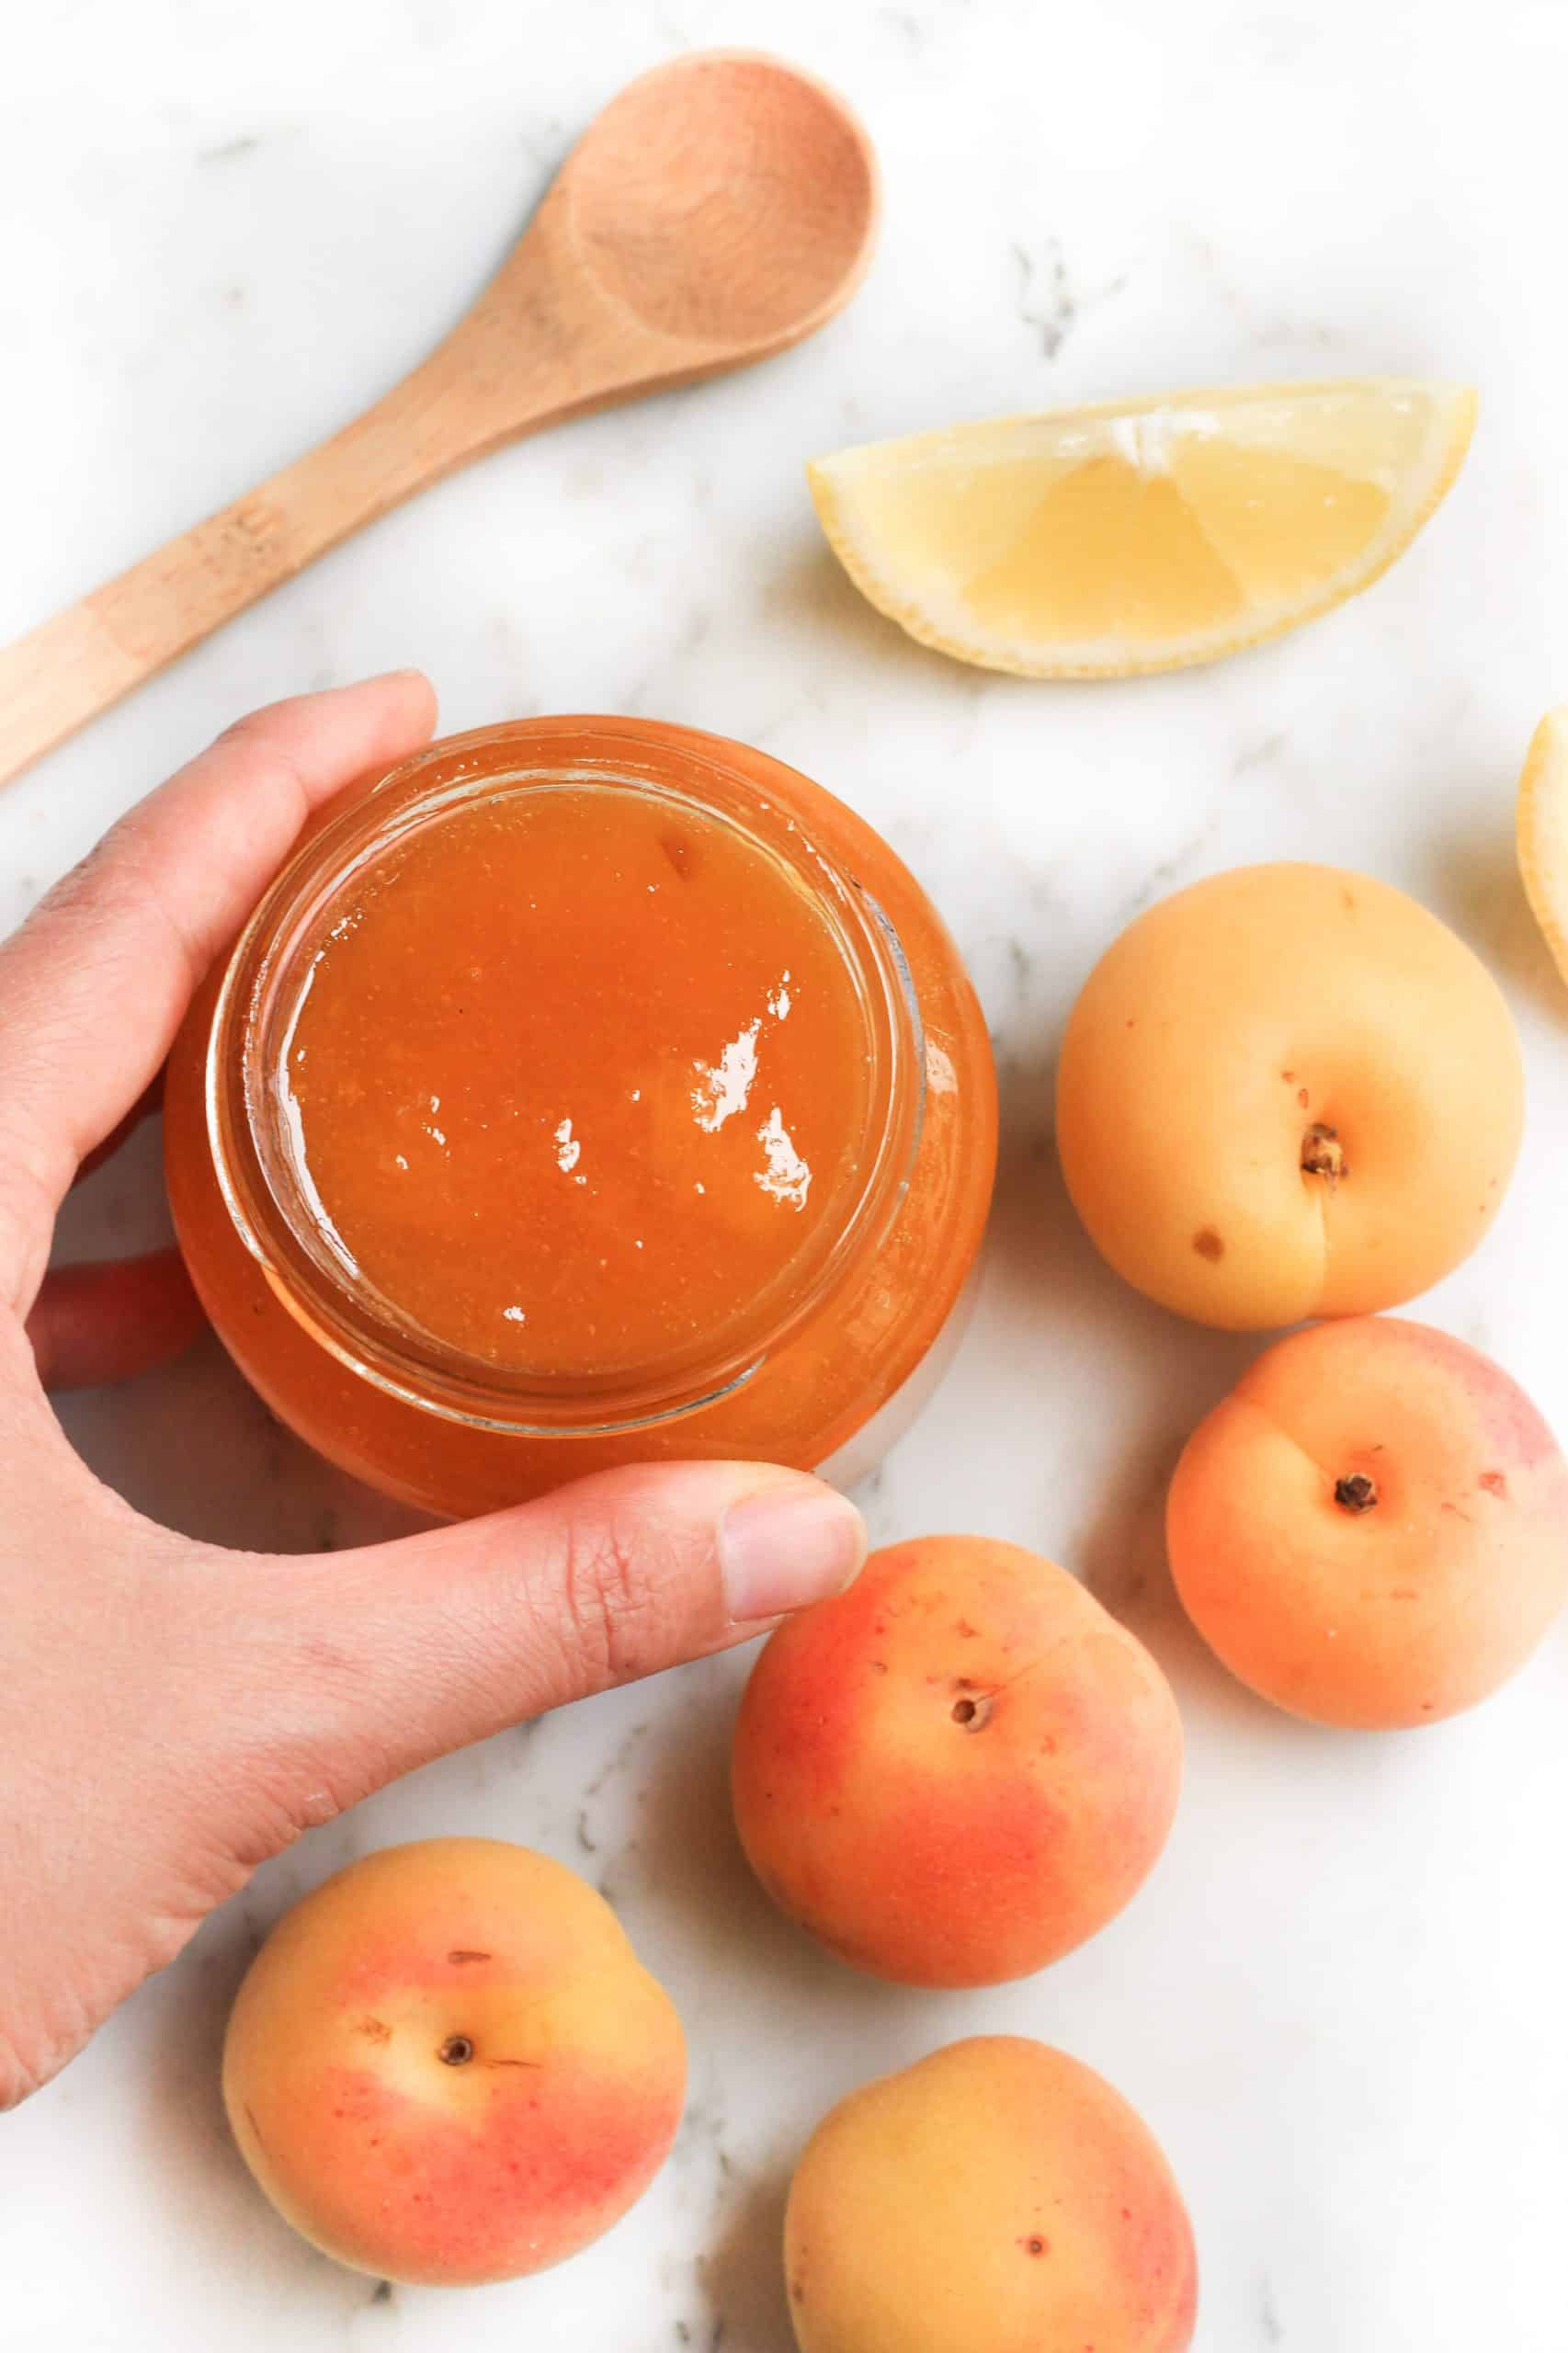 Hand holding an open jar of jam surrounded by fresh apricots.